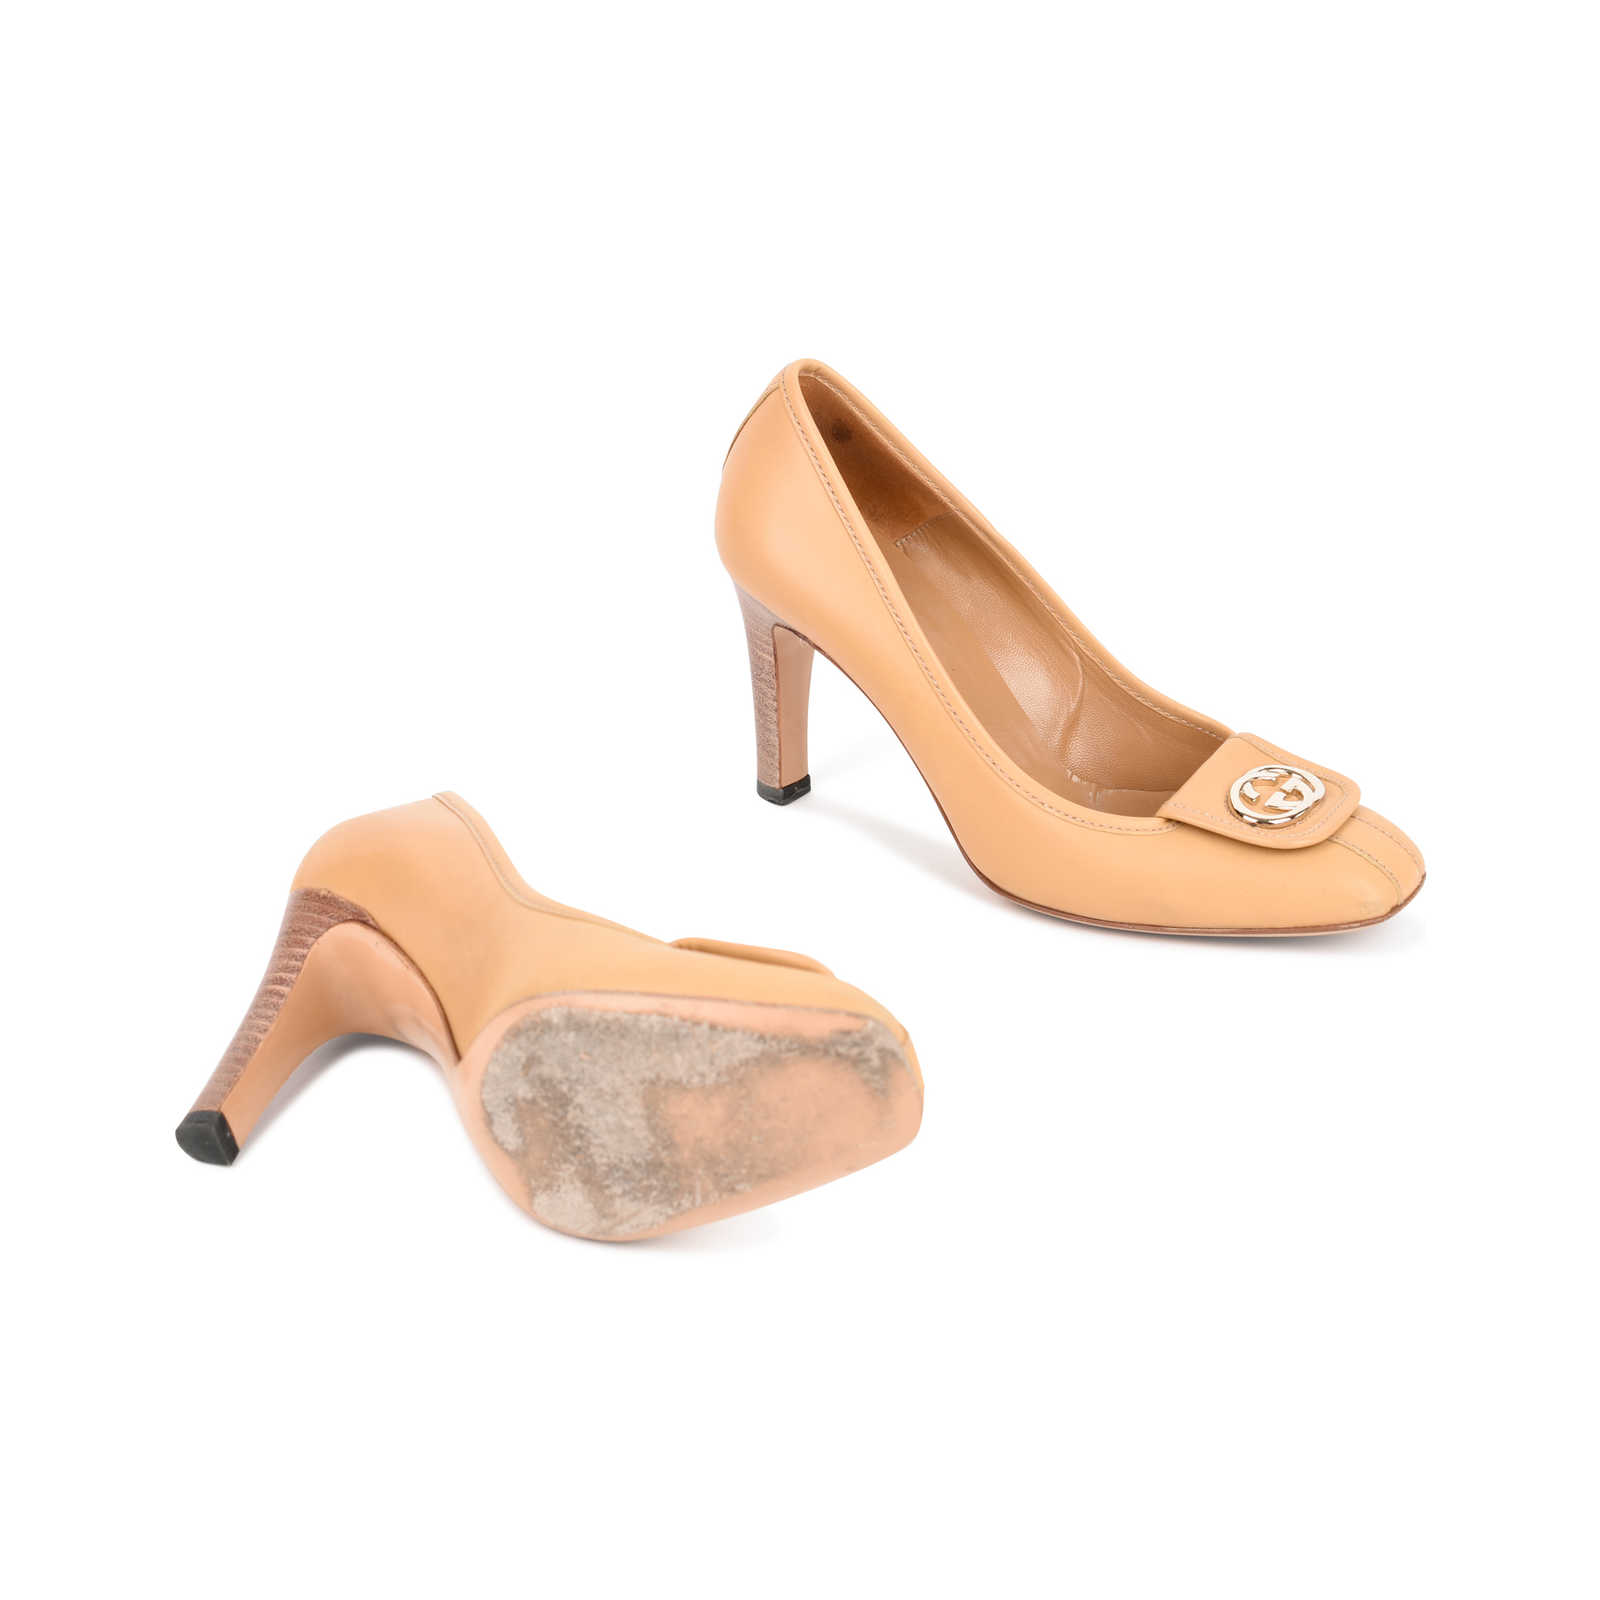 626aed3b8 ... Authentic Second Hand Gucci Beige Logo Pumps (PSS-462-00012) -  Thumbnail ...